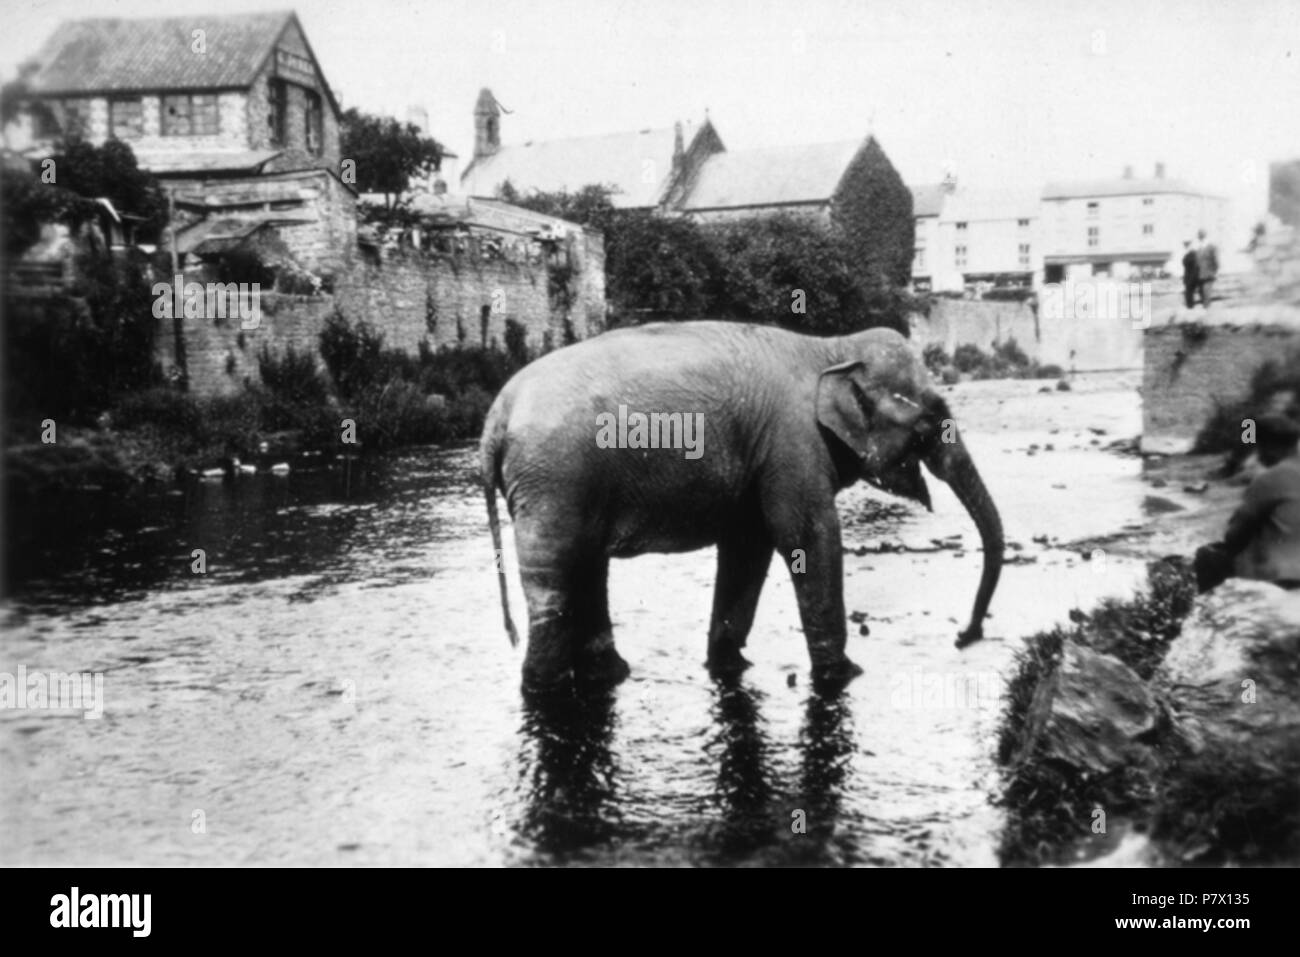 English: M6818 River Monnow according to Beacon 9 May 1930 an Elephant escaped from the Mop Fair as they were leaving Monmouth. St Thomas Church in the Background . 9 May 1930 143 Elephant escapes in Monmouth - Stock Image